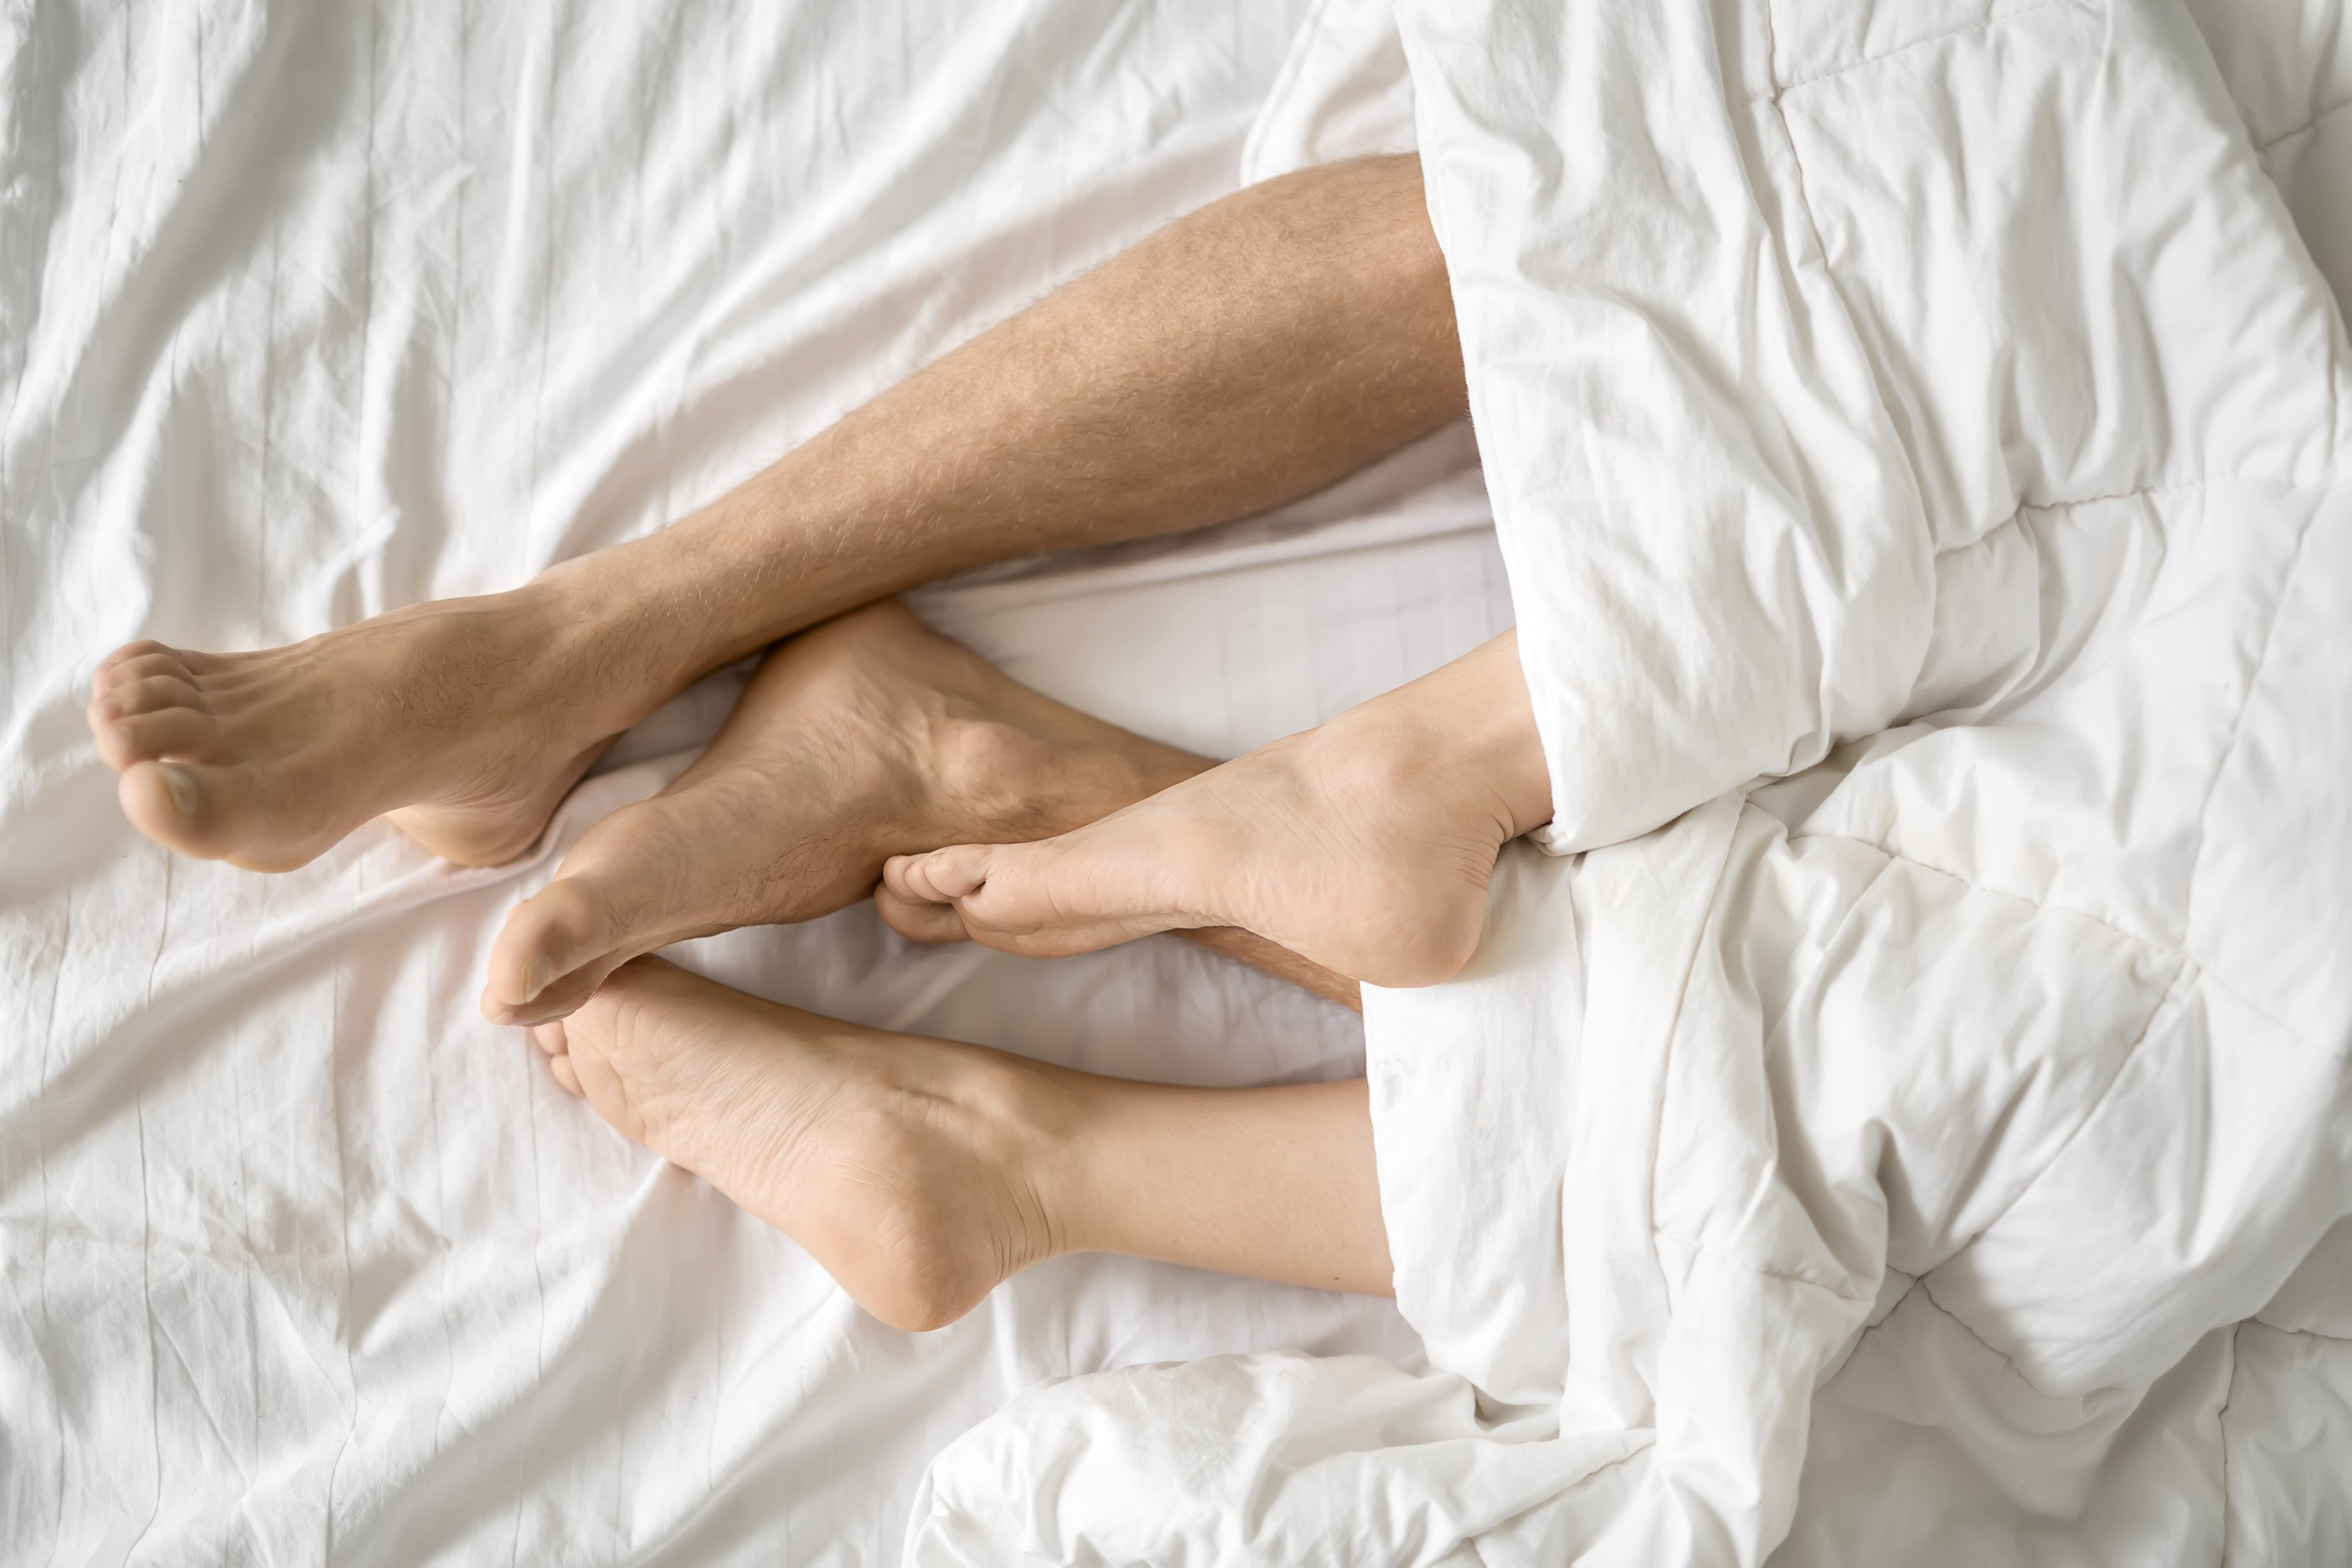 The key to a no-regrets one-night stand